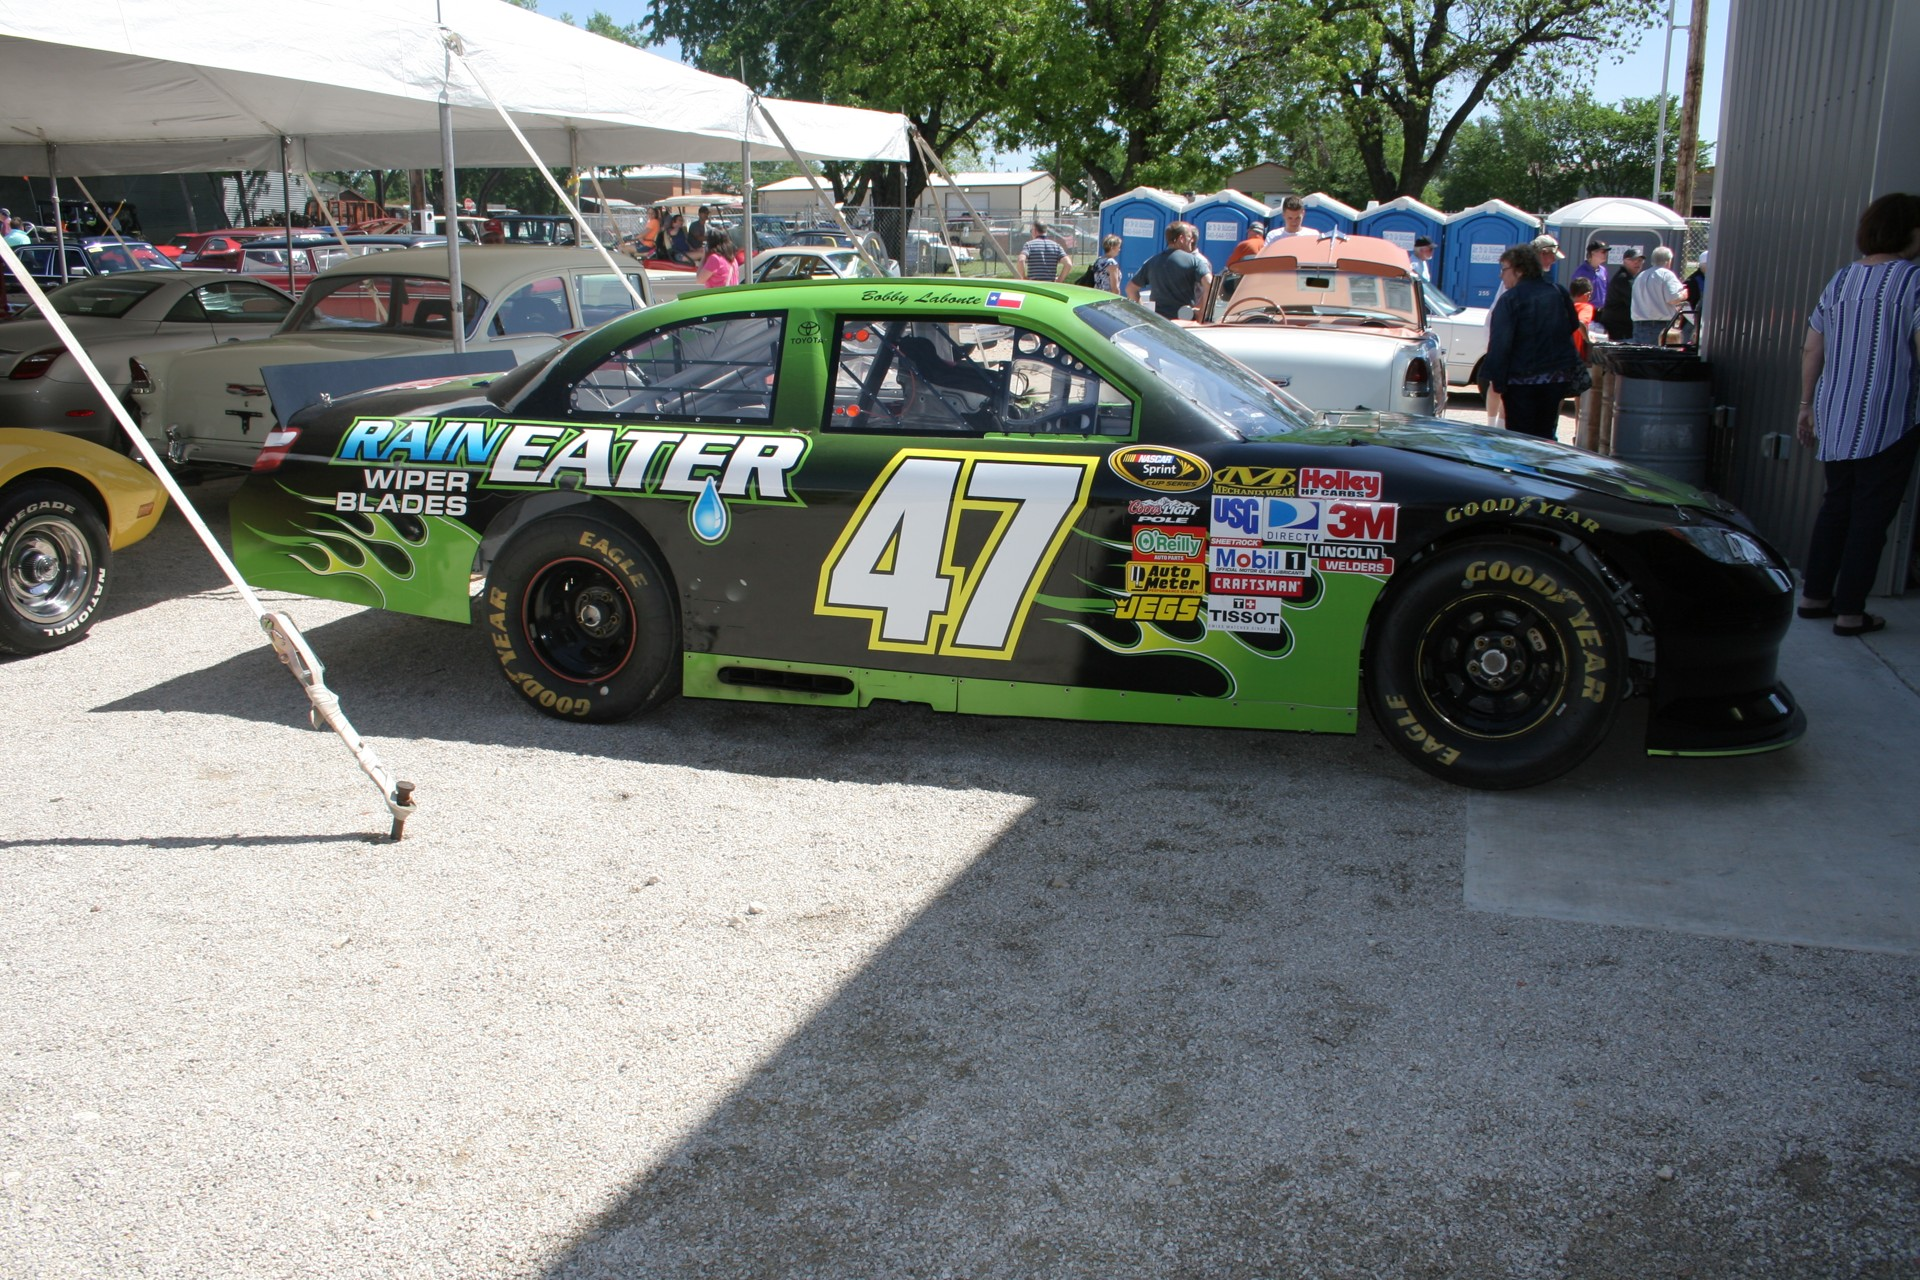 4th Image of a 2012 TOYOTA CAMRY NASCAR